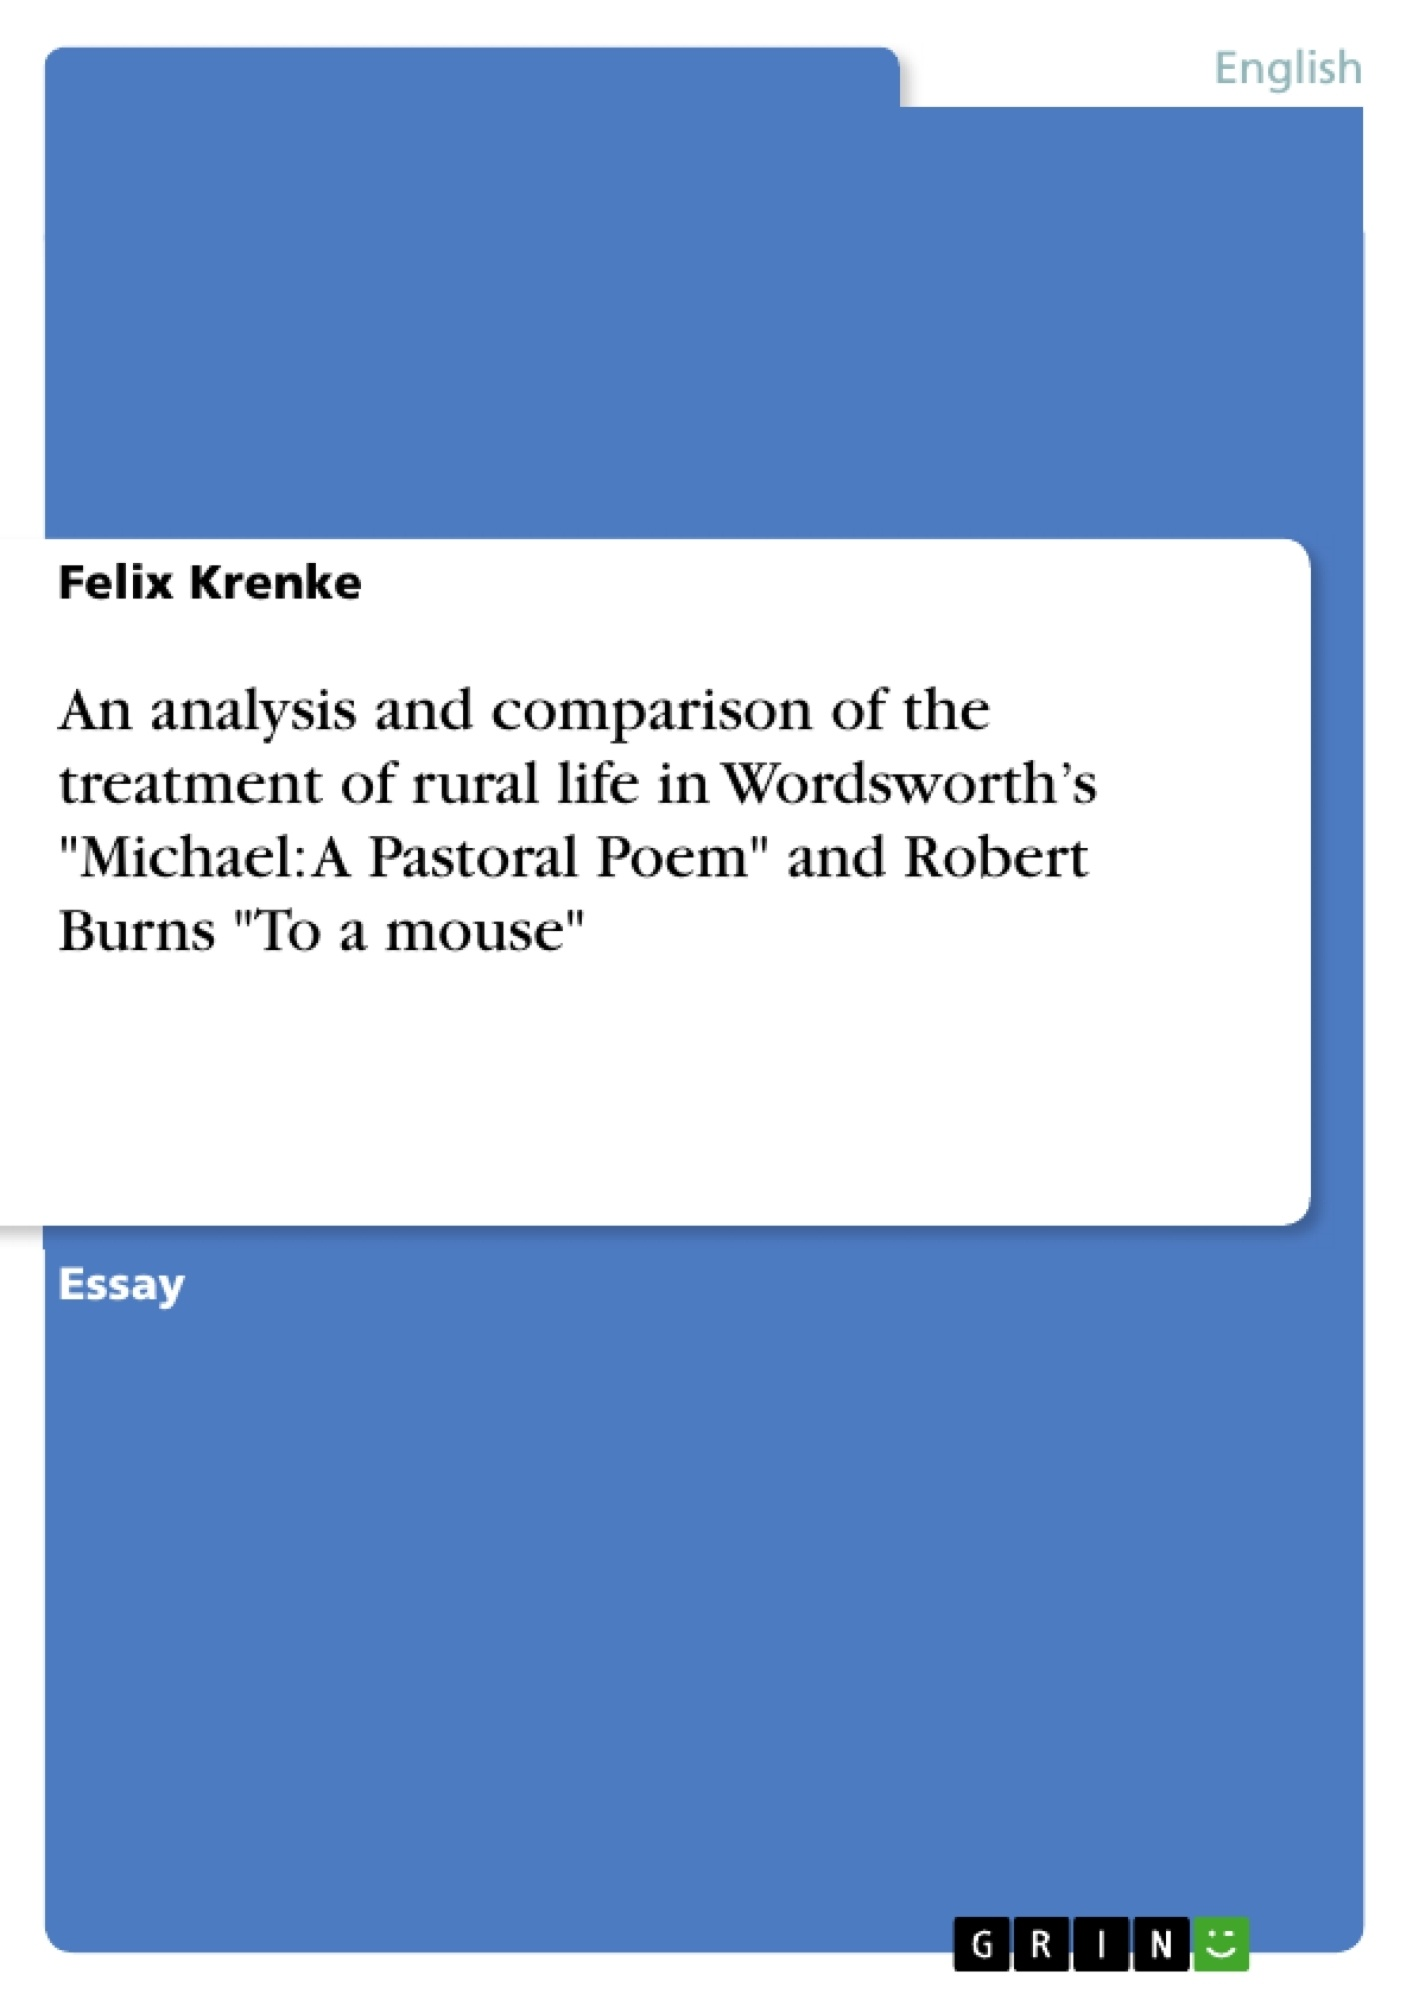 """Title: An analysis and comparison of the treatment of rural life in Wordsworth's """"Michael: A Pastoral Poem"""" and Robert Burns """"To a mouse"""""""